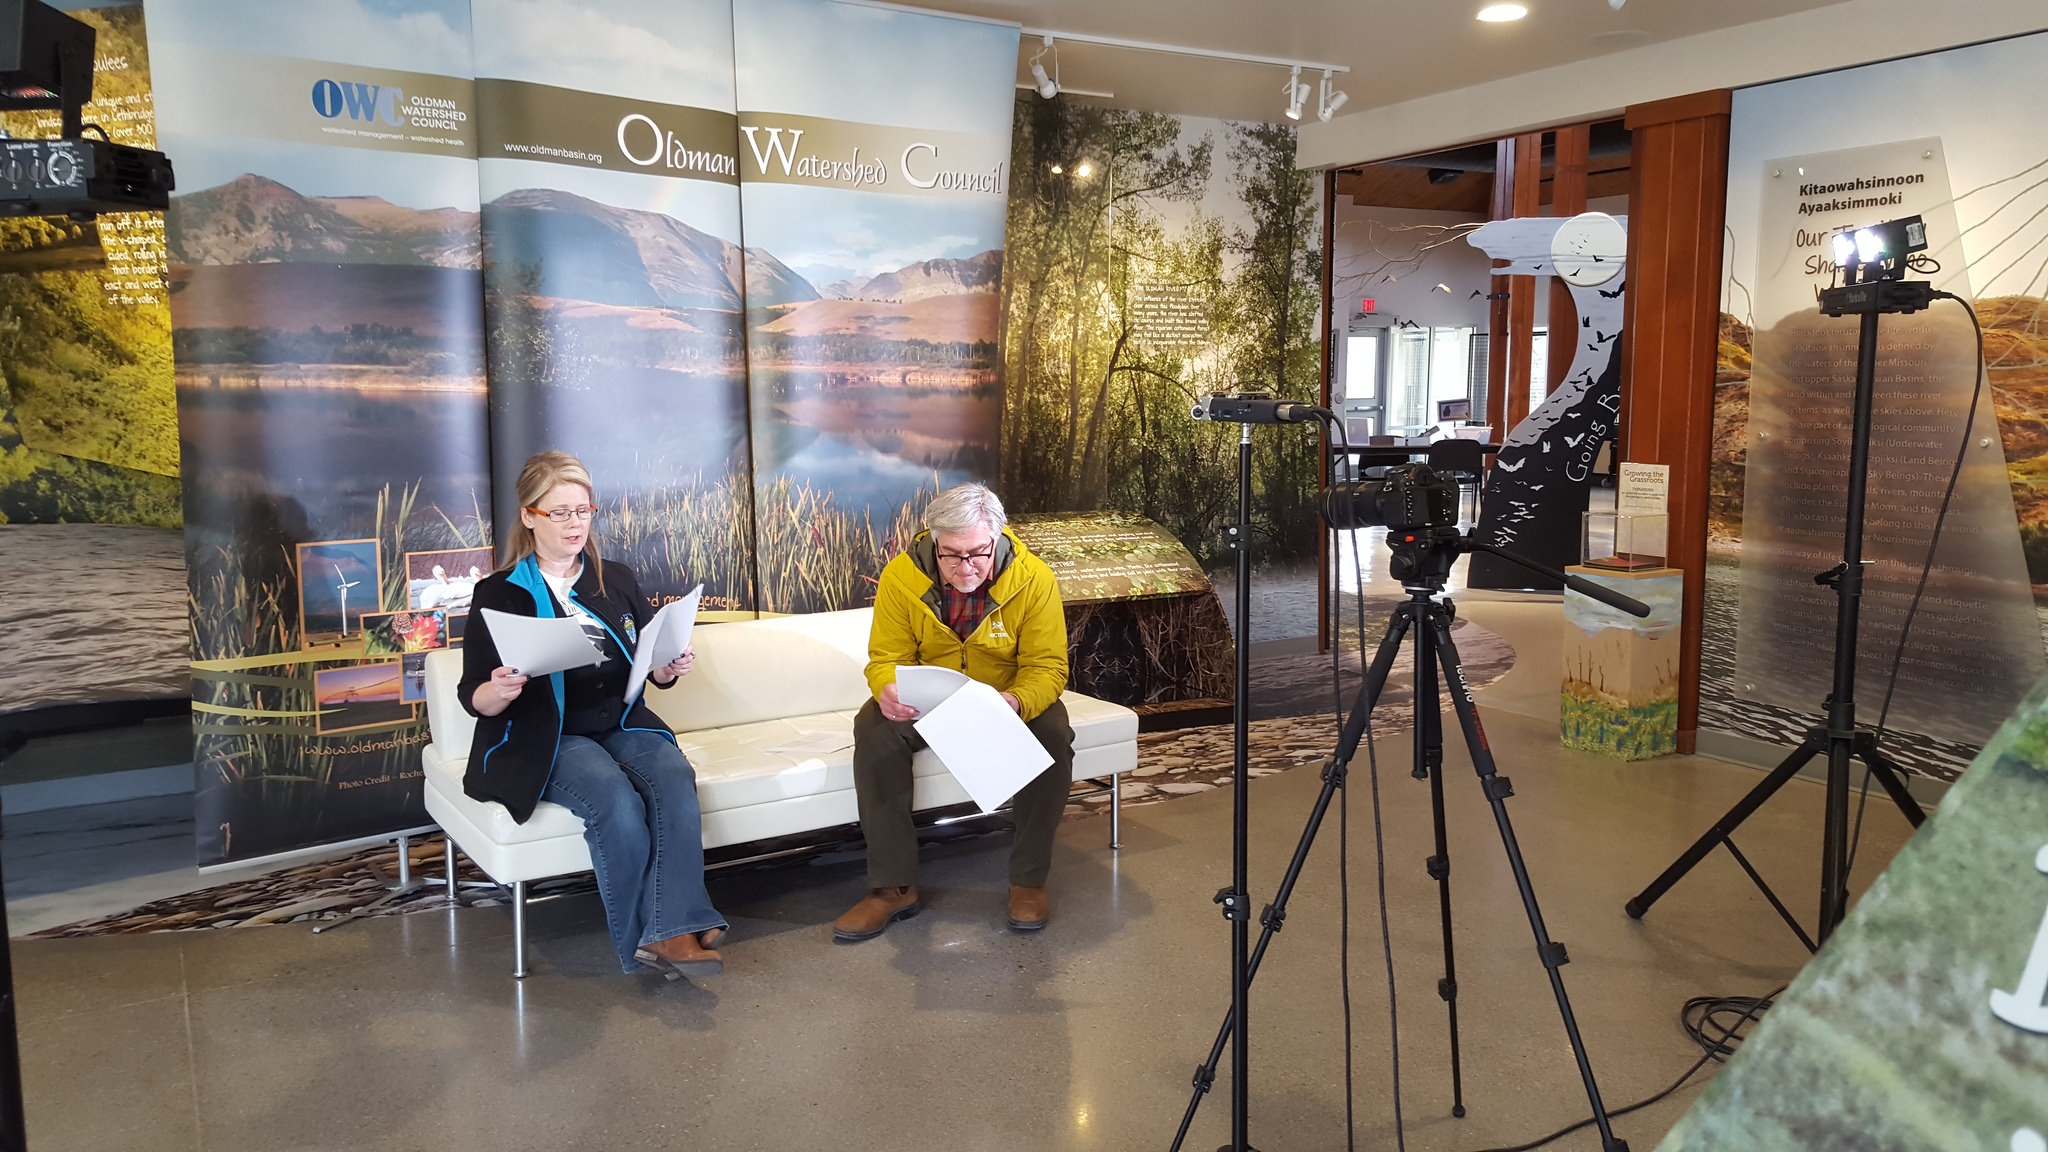 One of the videos features Anna Garleff, OWC Communications Specialist, and Doug Kaupp, City of Lethbridge General Manager of Water and Wastewater, discussing the science behind Lethbridge's innovative wastewater treatment plant.